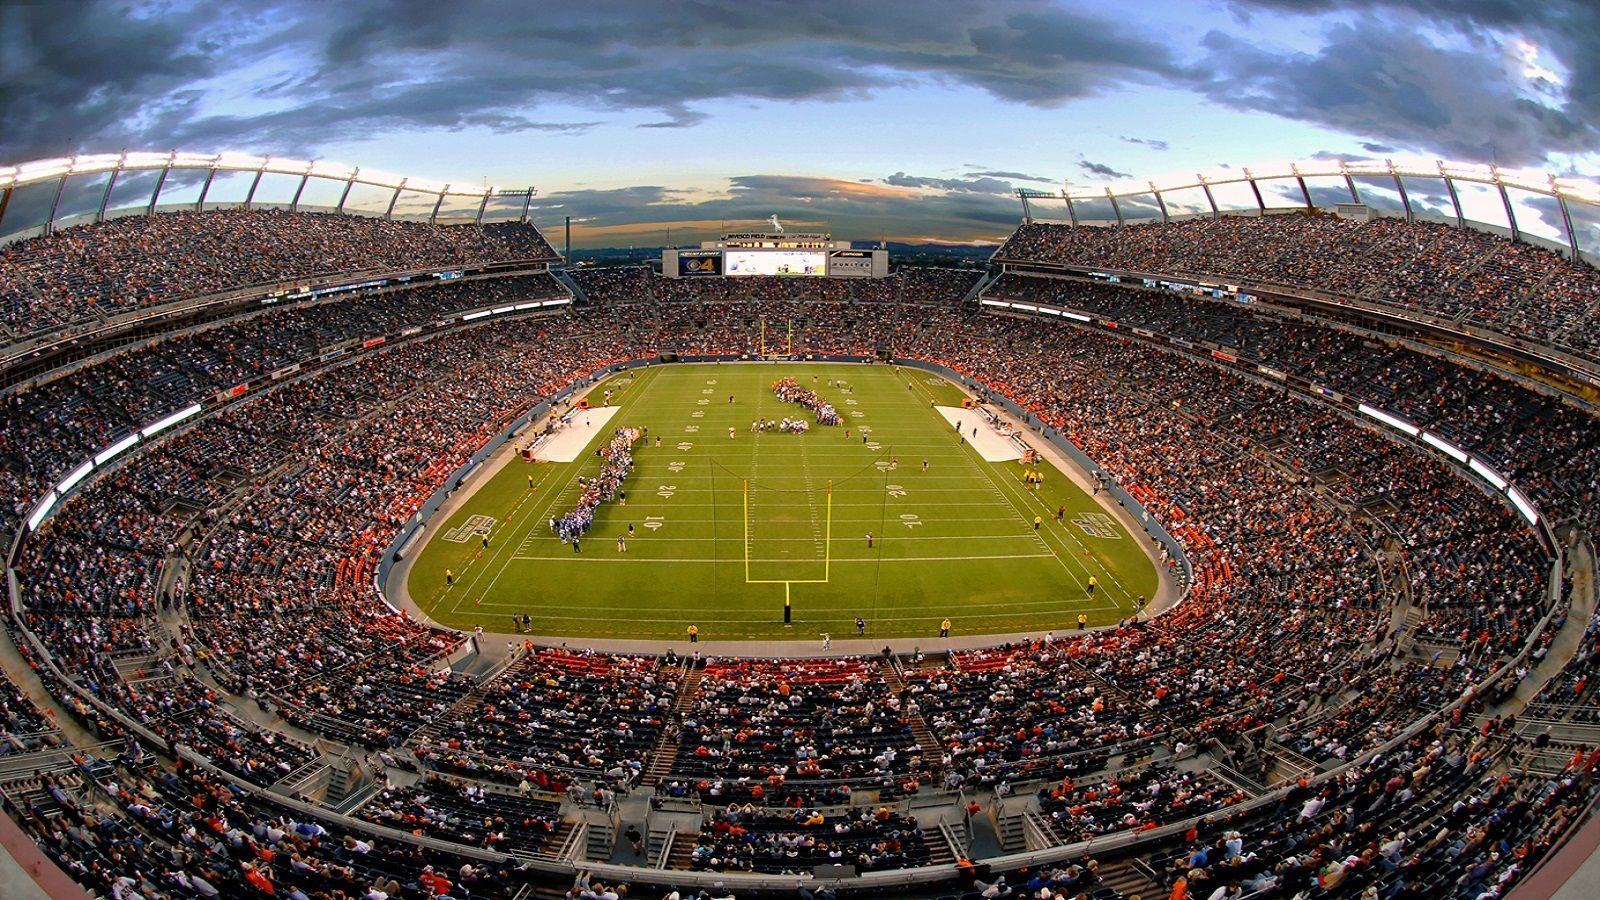 The Westin Denver Downtown - Sports Authority Field at Mile High Stadium